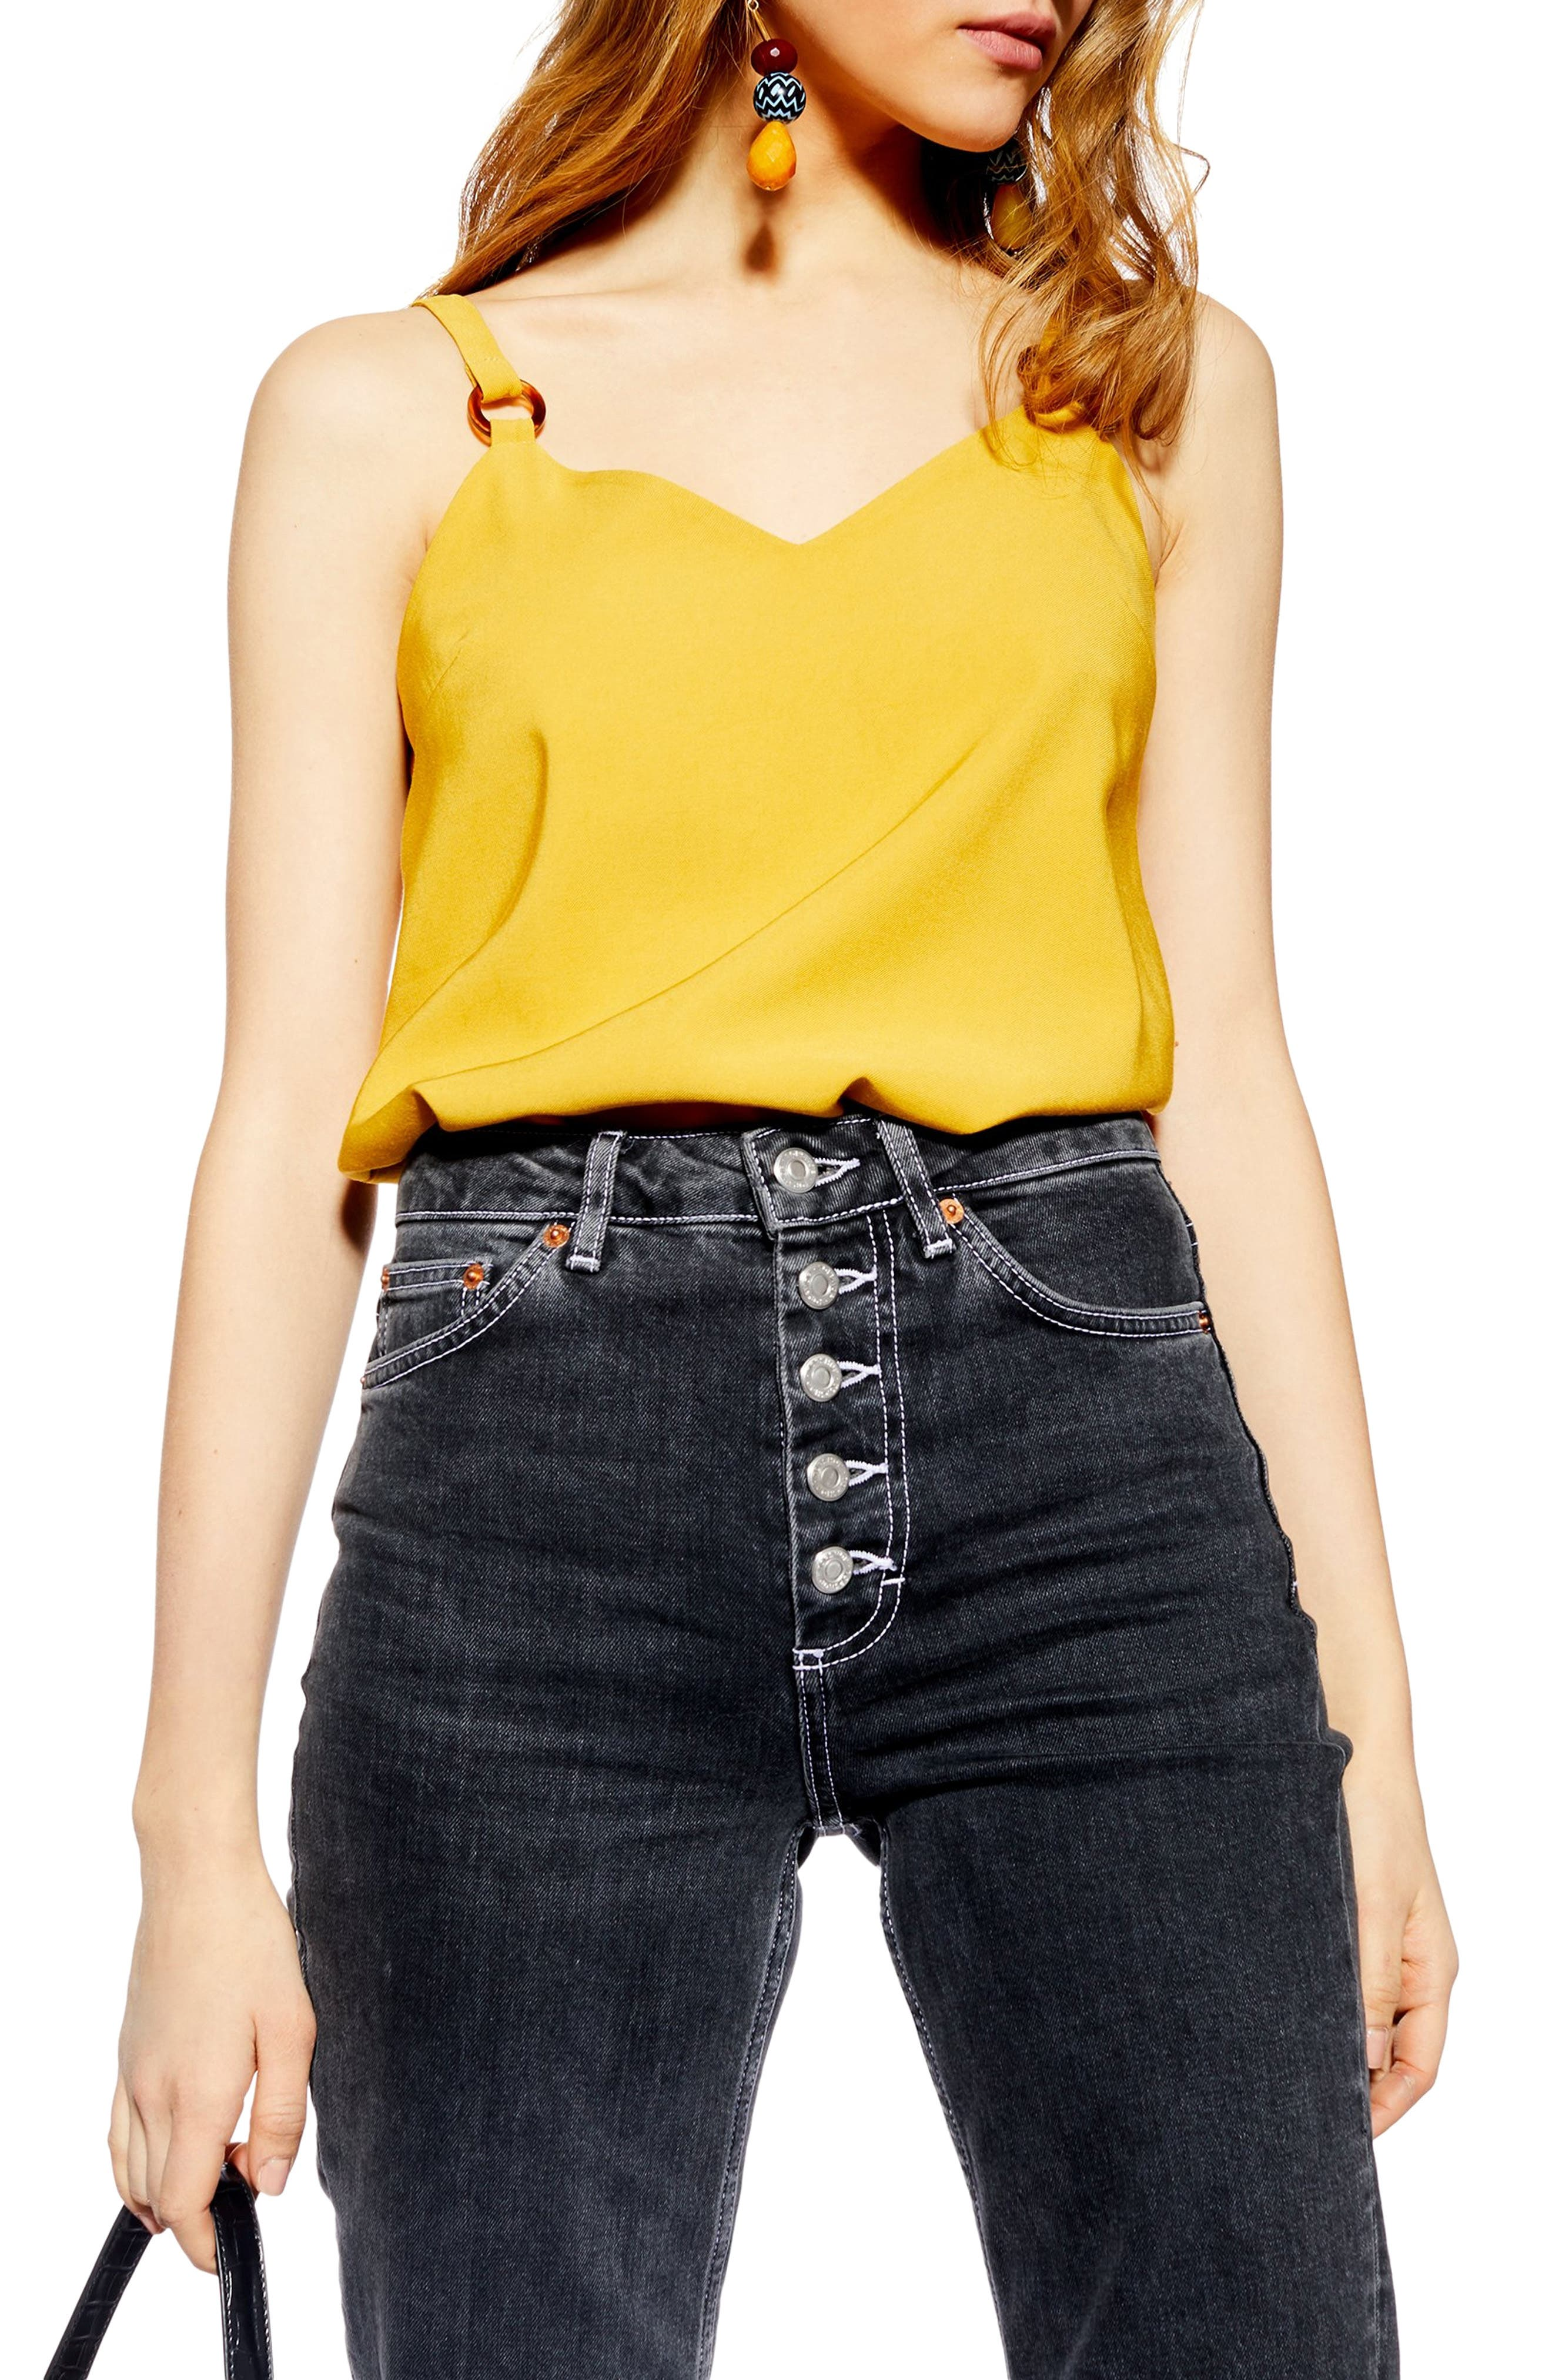 Topshop Tilda Ring Camisole Top, US (fits like 10-12) - Yellow